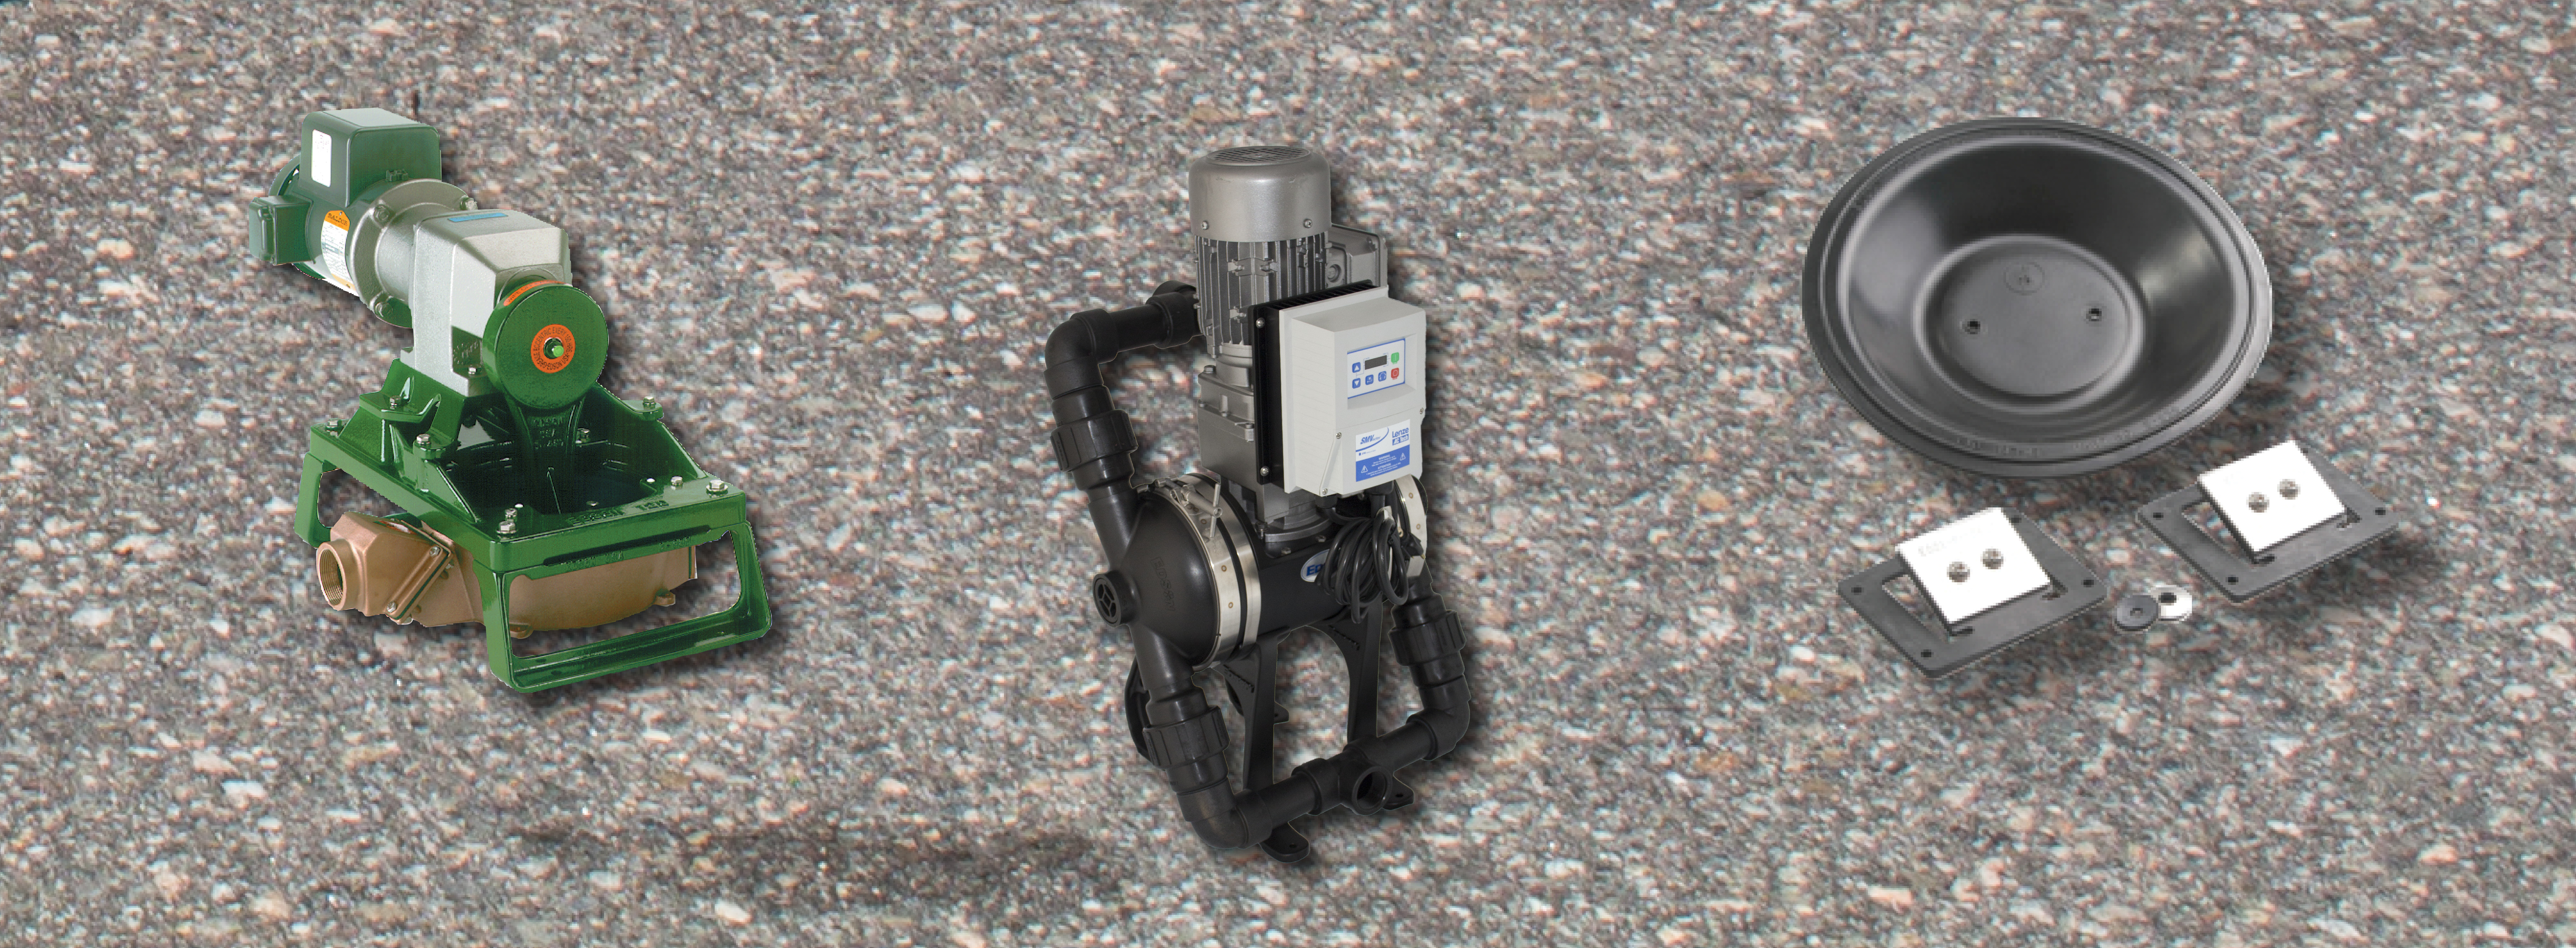 diaphragm-pump-parts-page-banner-small.jpg